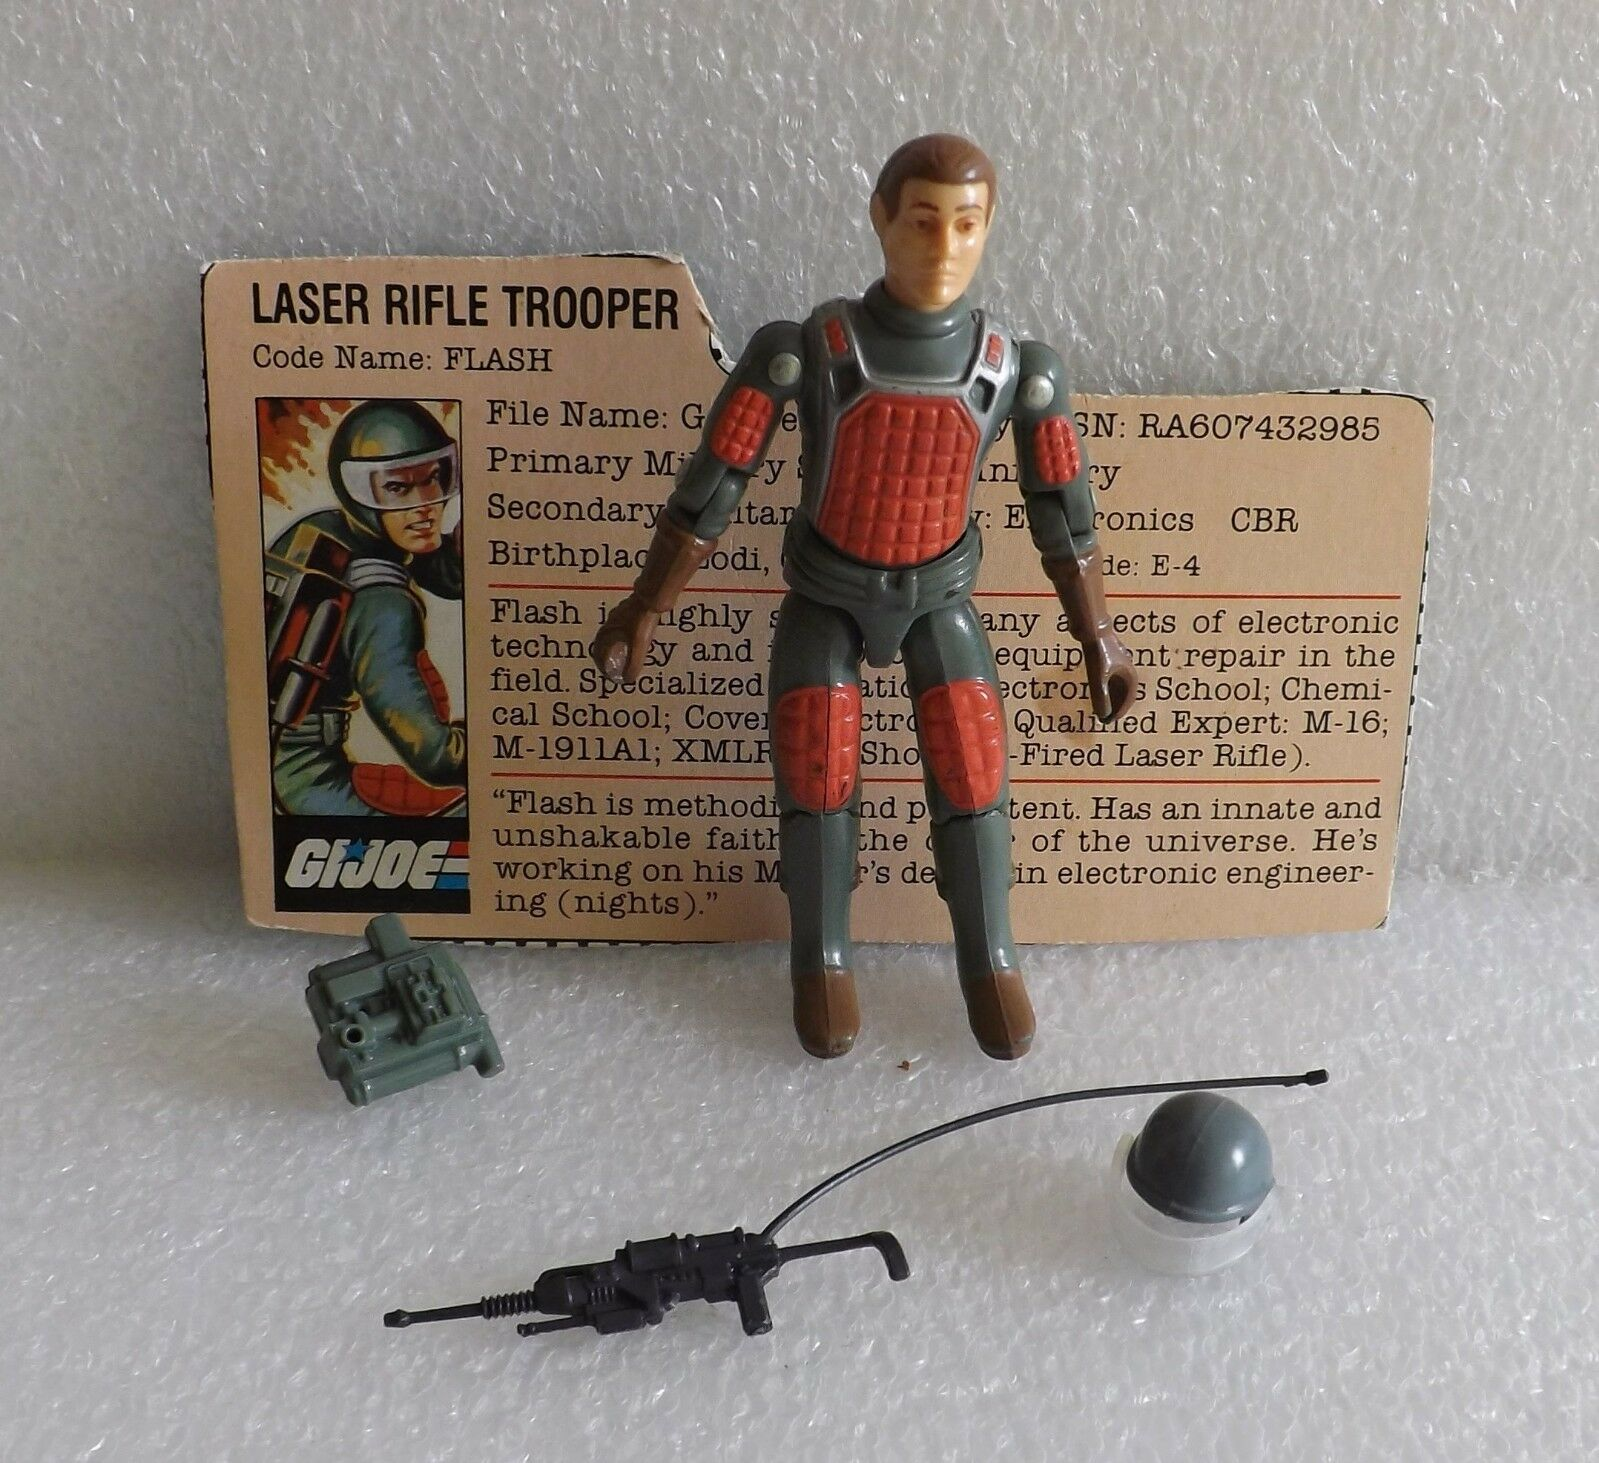 VINTAGE GI JOE 1982 FLASH LASER TROOPER STRAIGHT STRAIGHT STRAIGHT ARM 100% w FC V1 EXCELLENT 9144e6